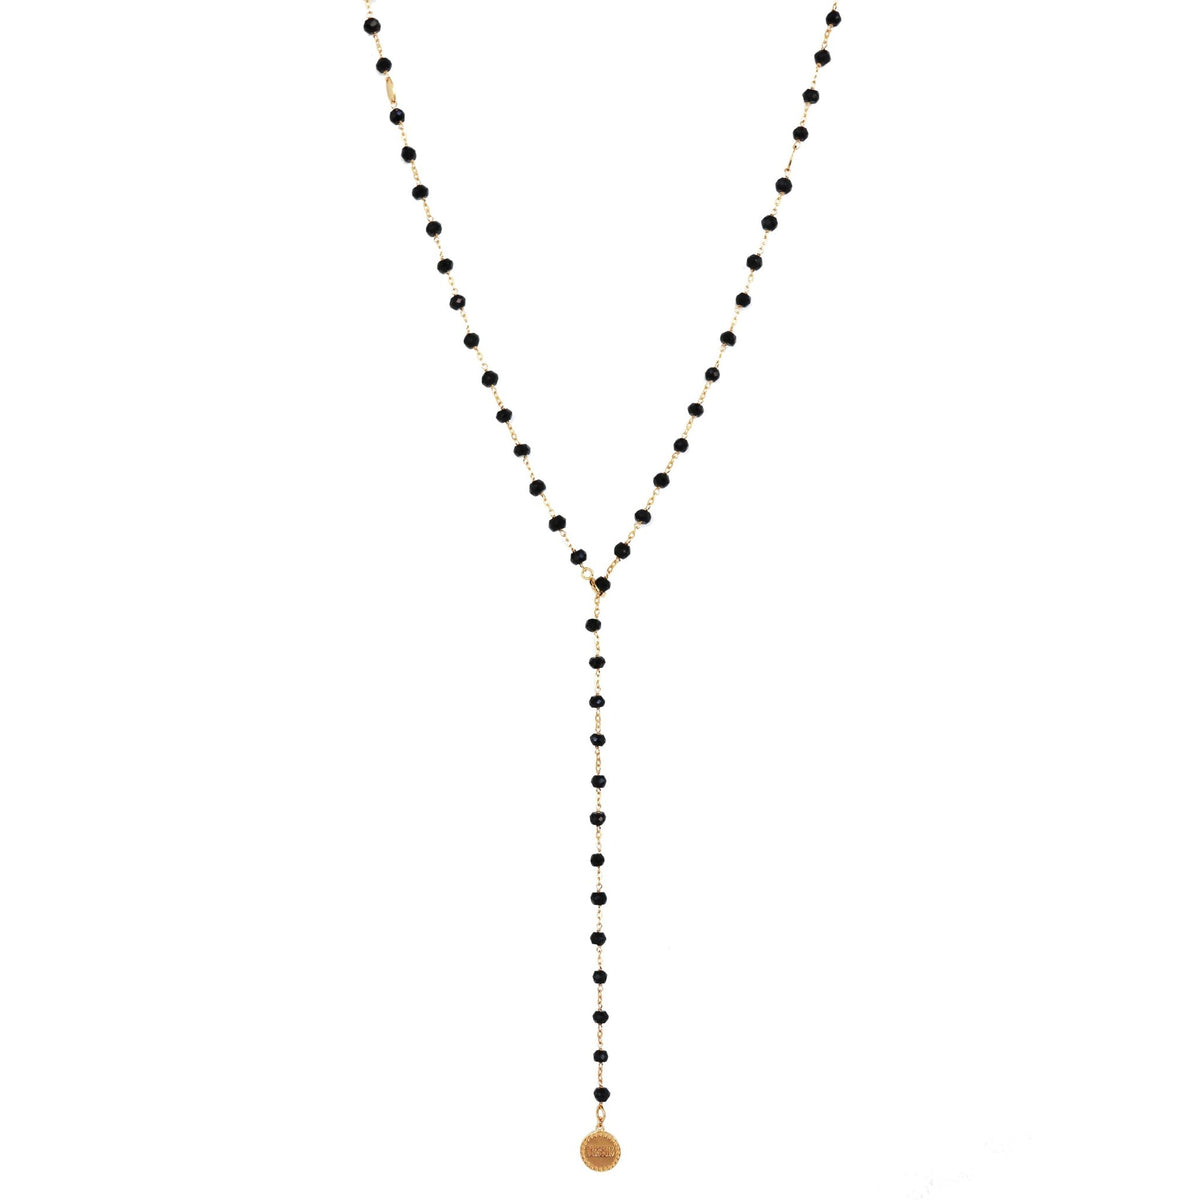 "ICONIC MIDI BEADED NECKLACE - BLACK ONYX & GOLD 24-25"" - SO PRETTY CARA COTTER"